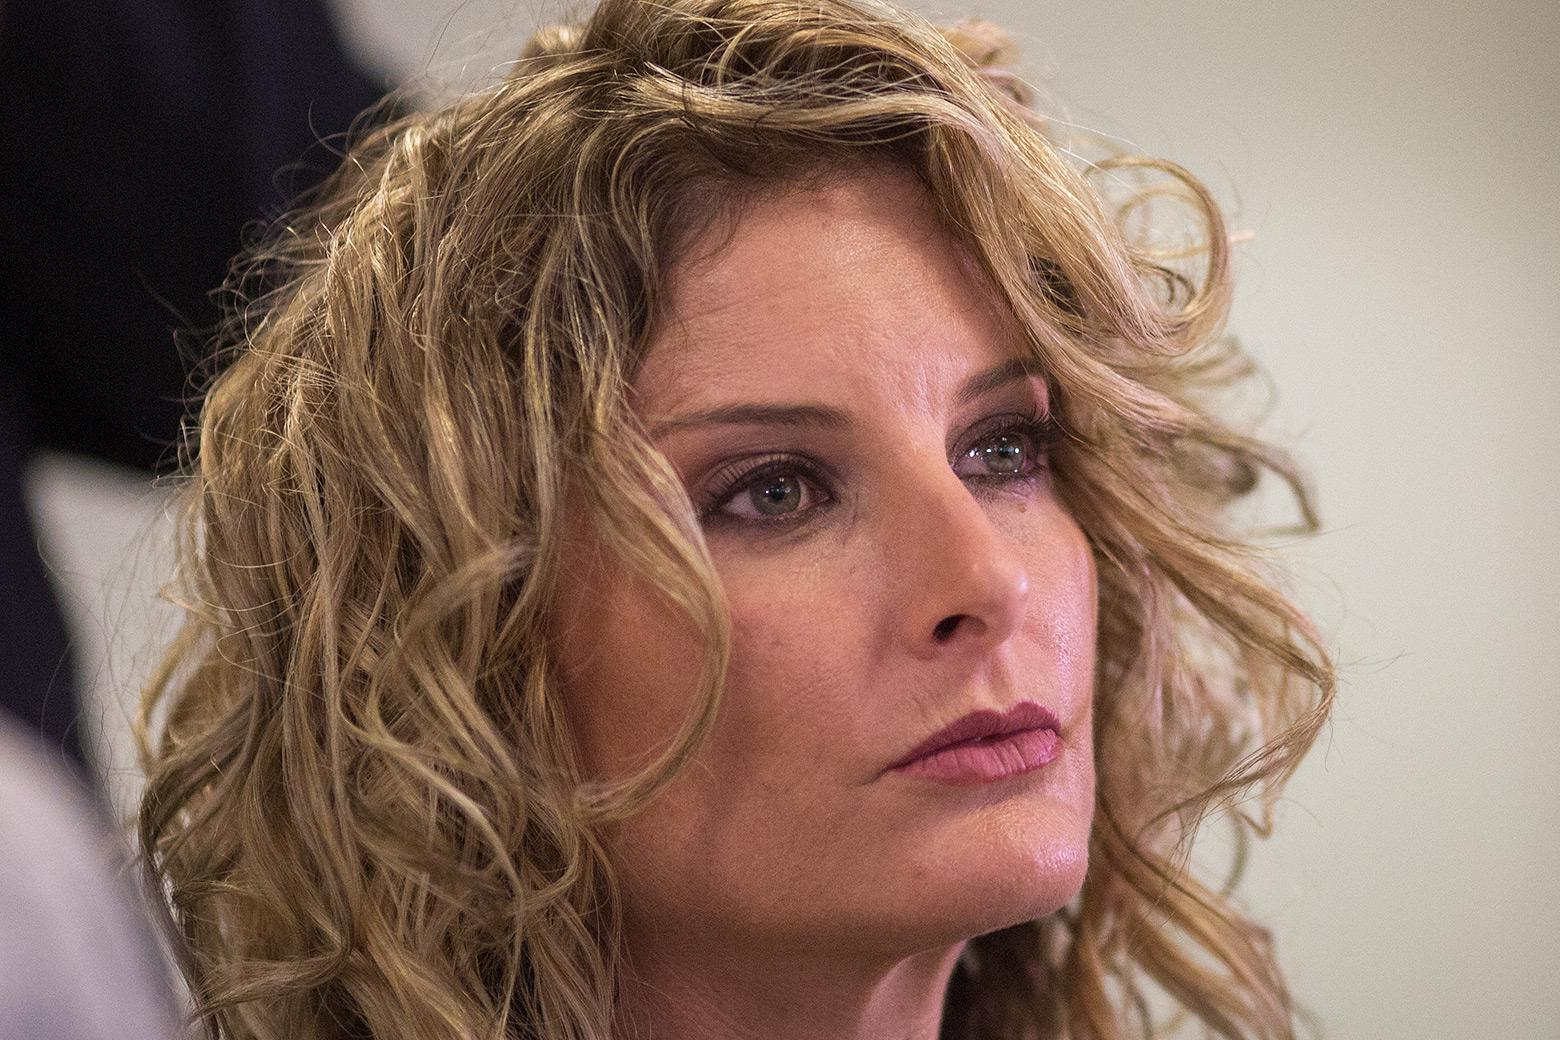 Summer Zervos attends a press conference to announce her defamation lawsuit against President-elect Donald Trump on January 17, 2017 in Los Angeles, California.